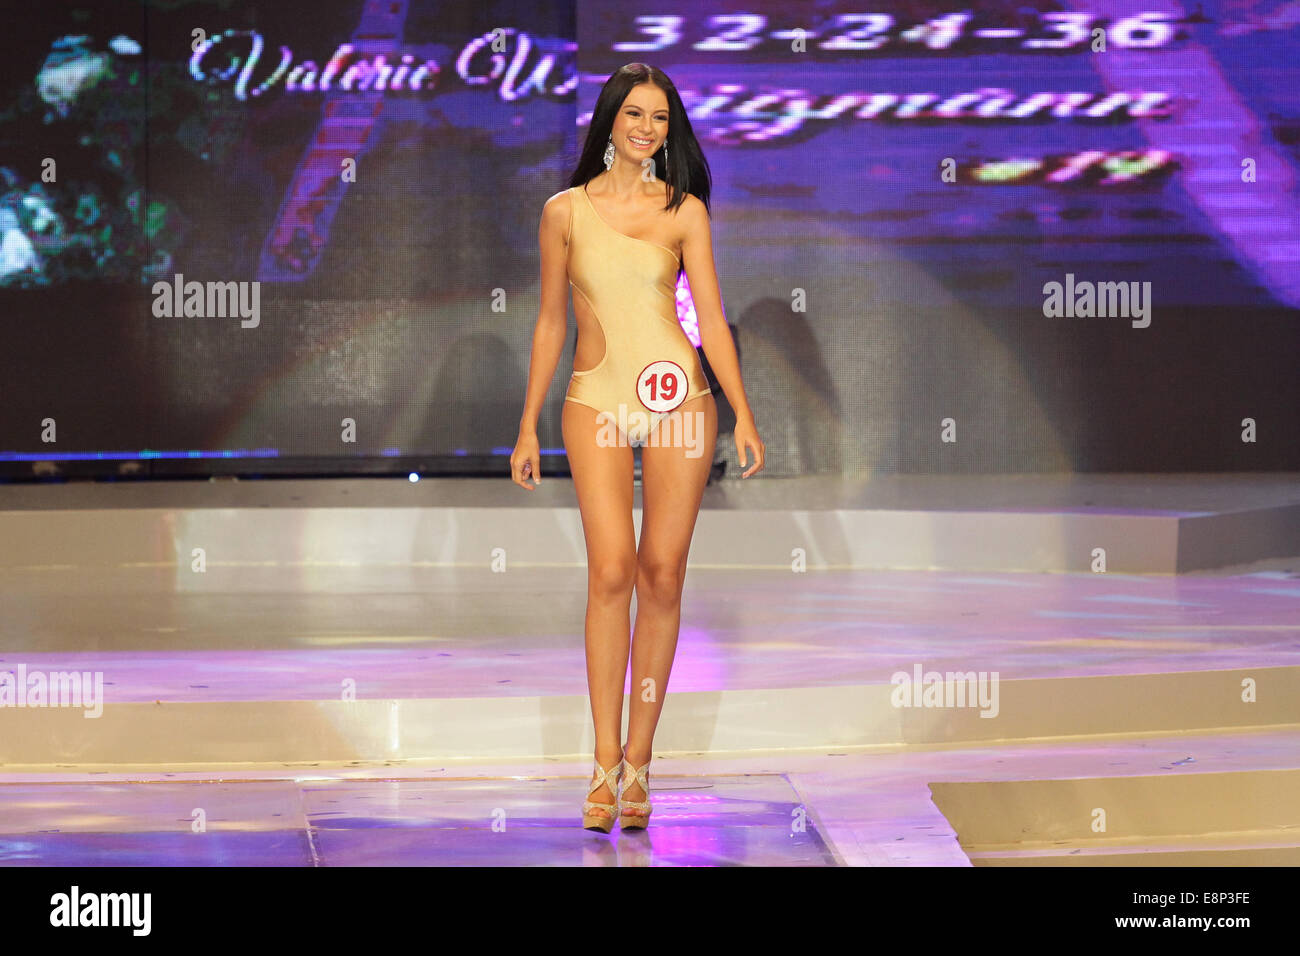 Pasay City, Phillipines. 13th October, 2014. Valerie Weigmann presents her swimsuit at the Miss World Philippines Stock Photo